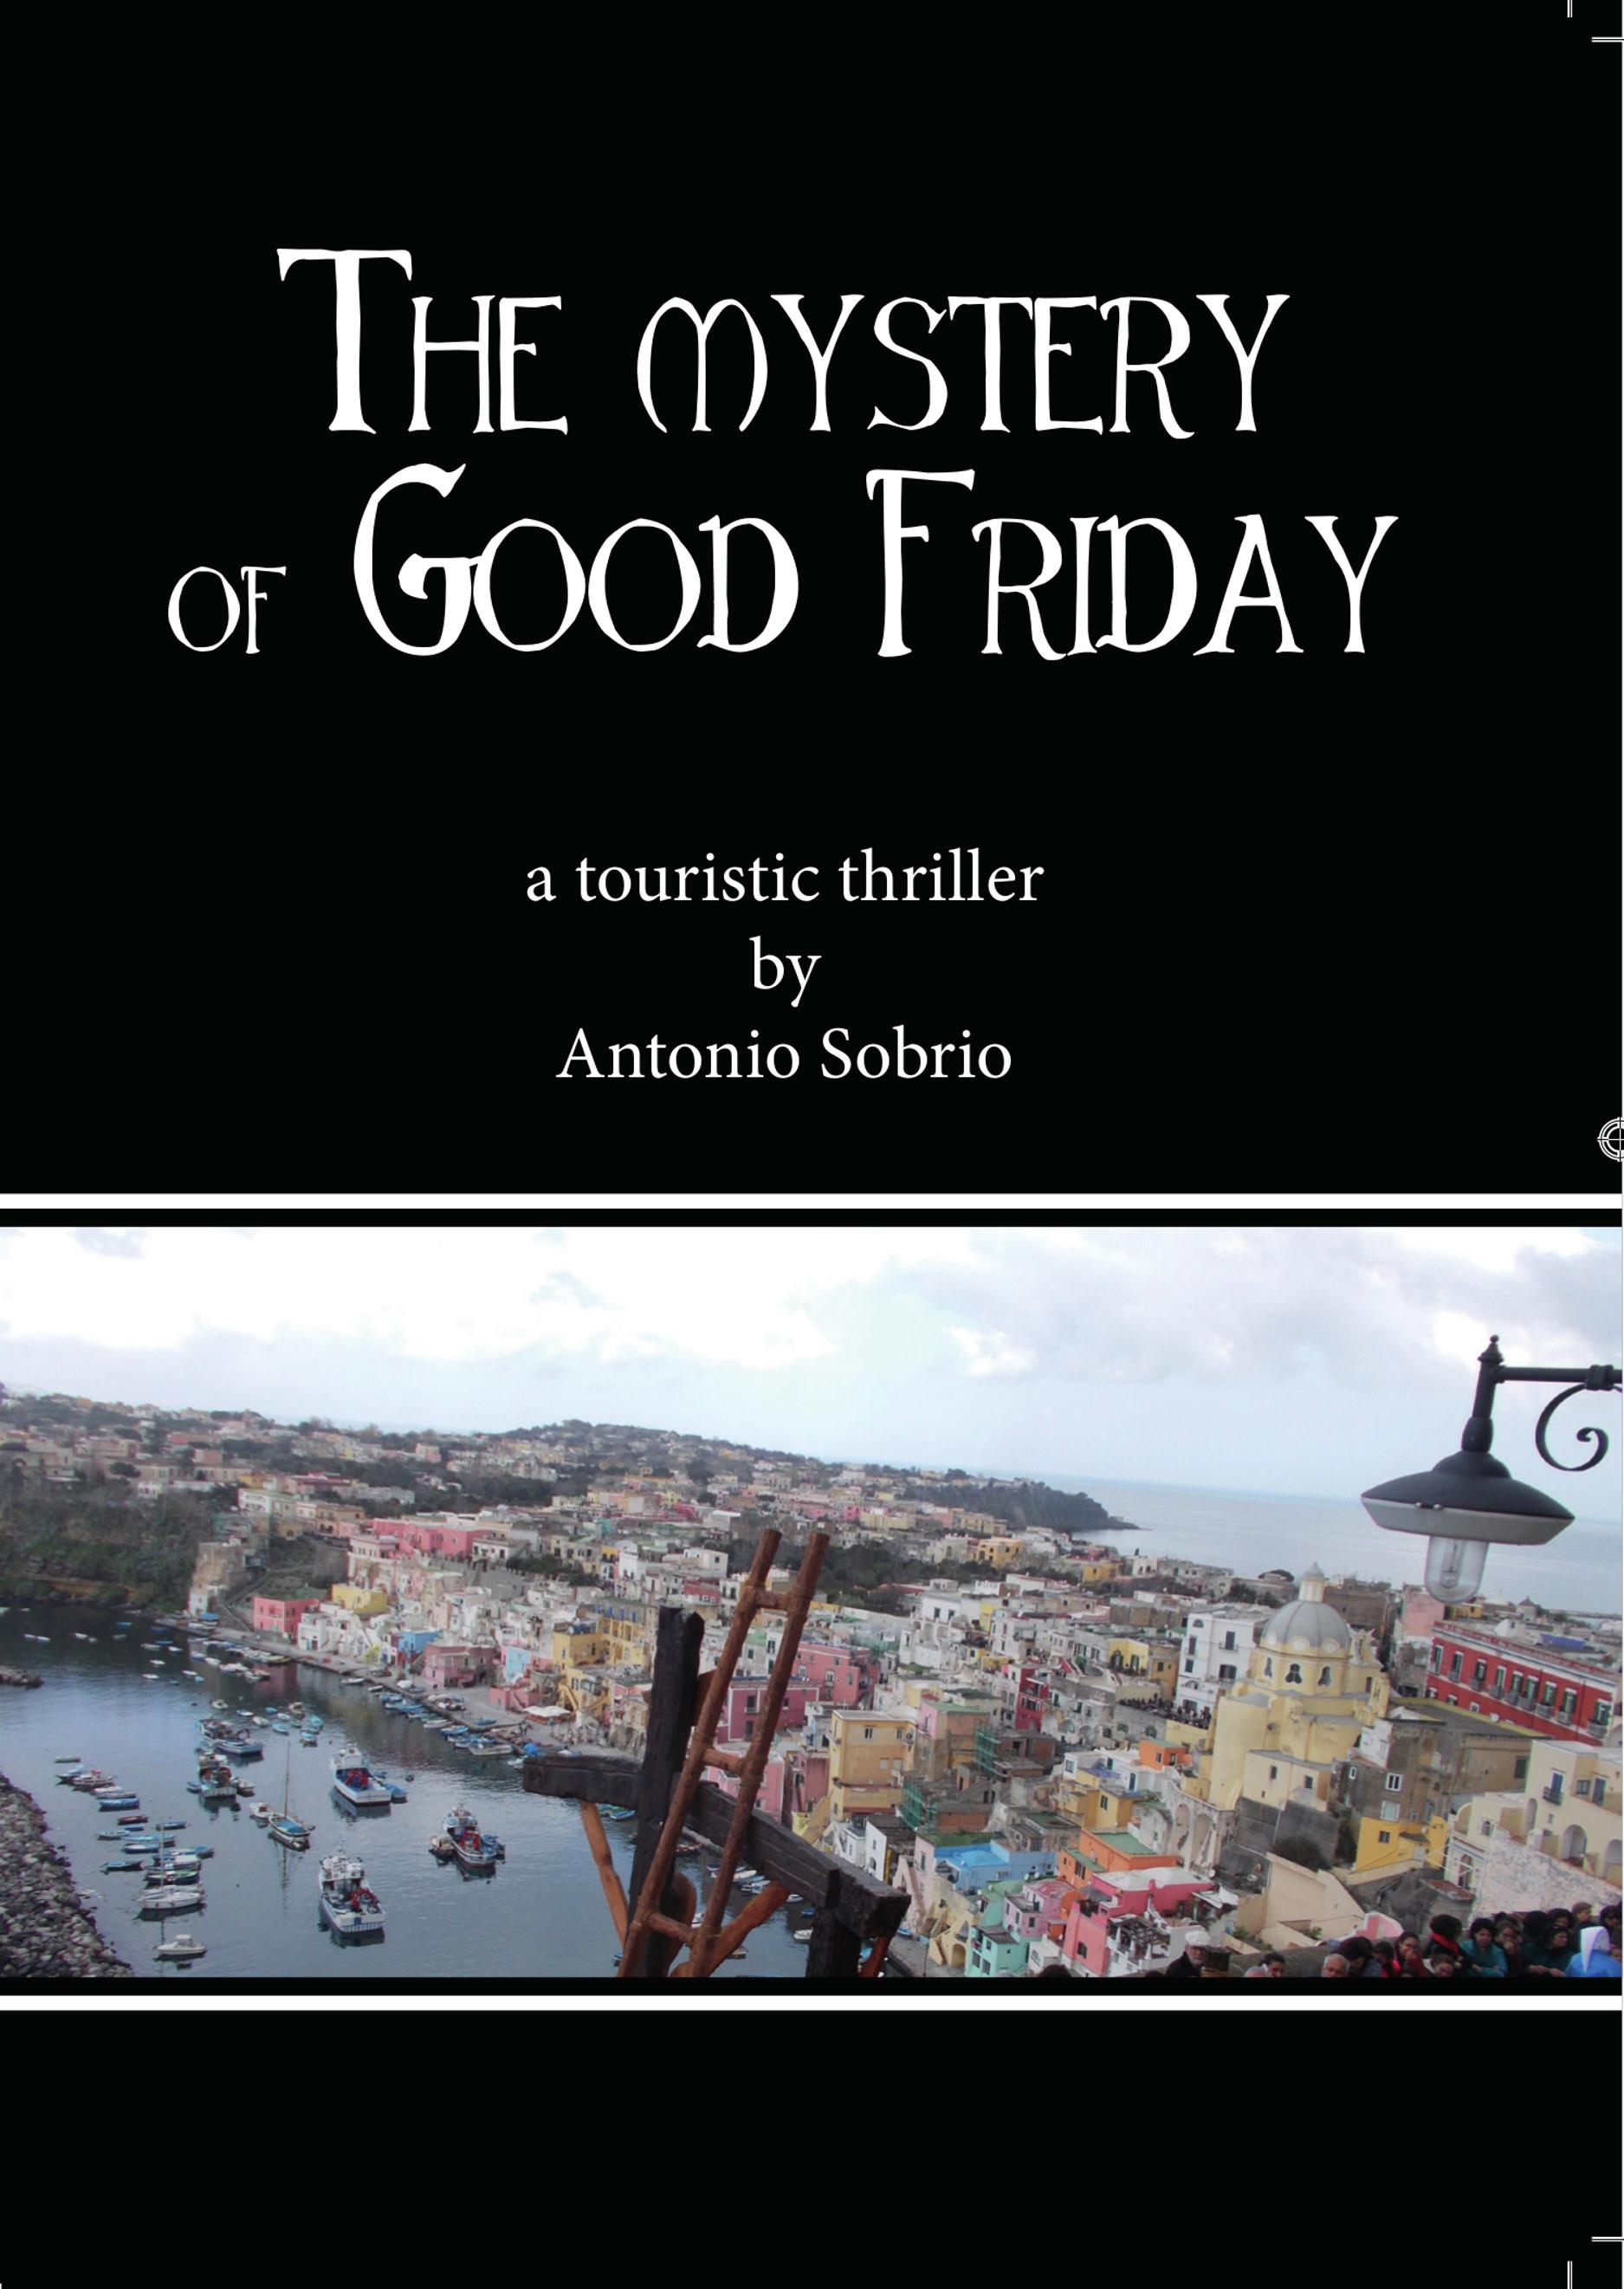 The mystery of Good Friday